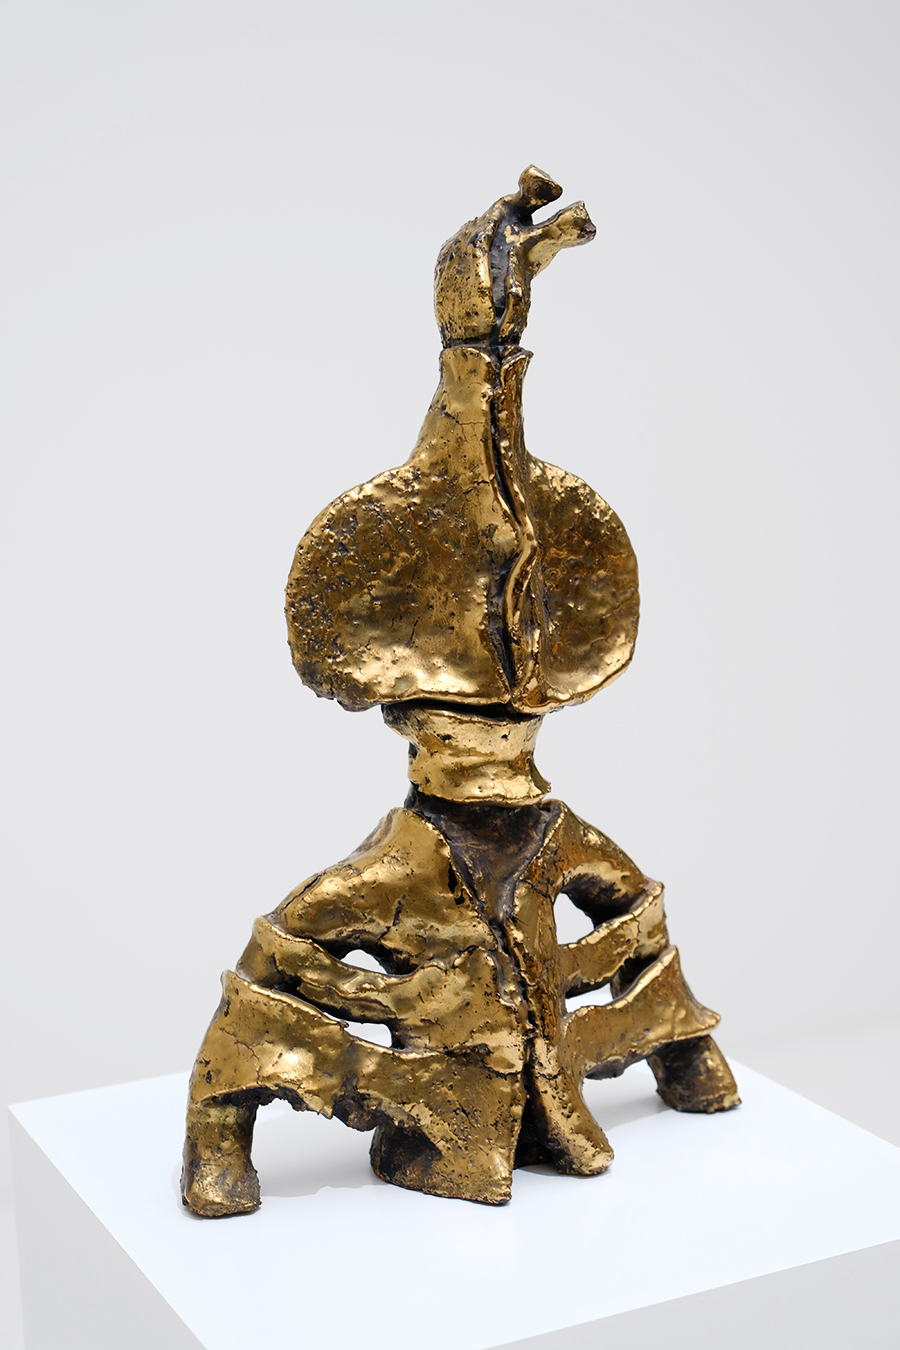 Yves Rhaye ceramic sculpture 1969